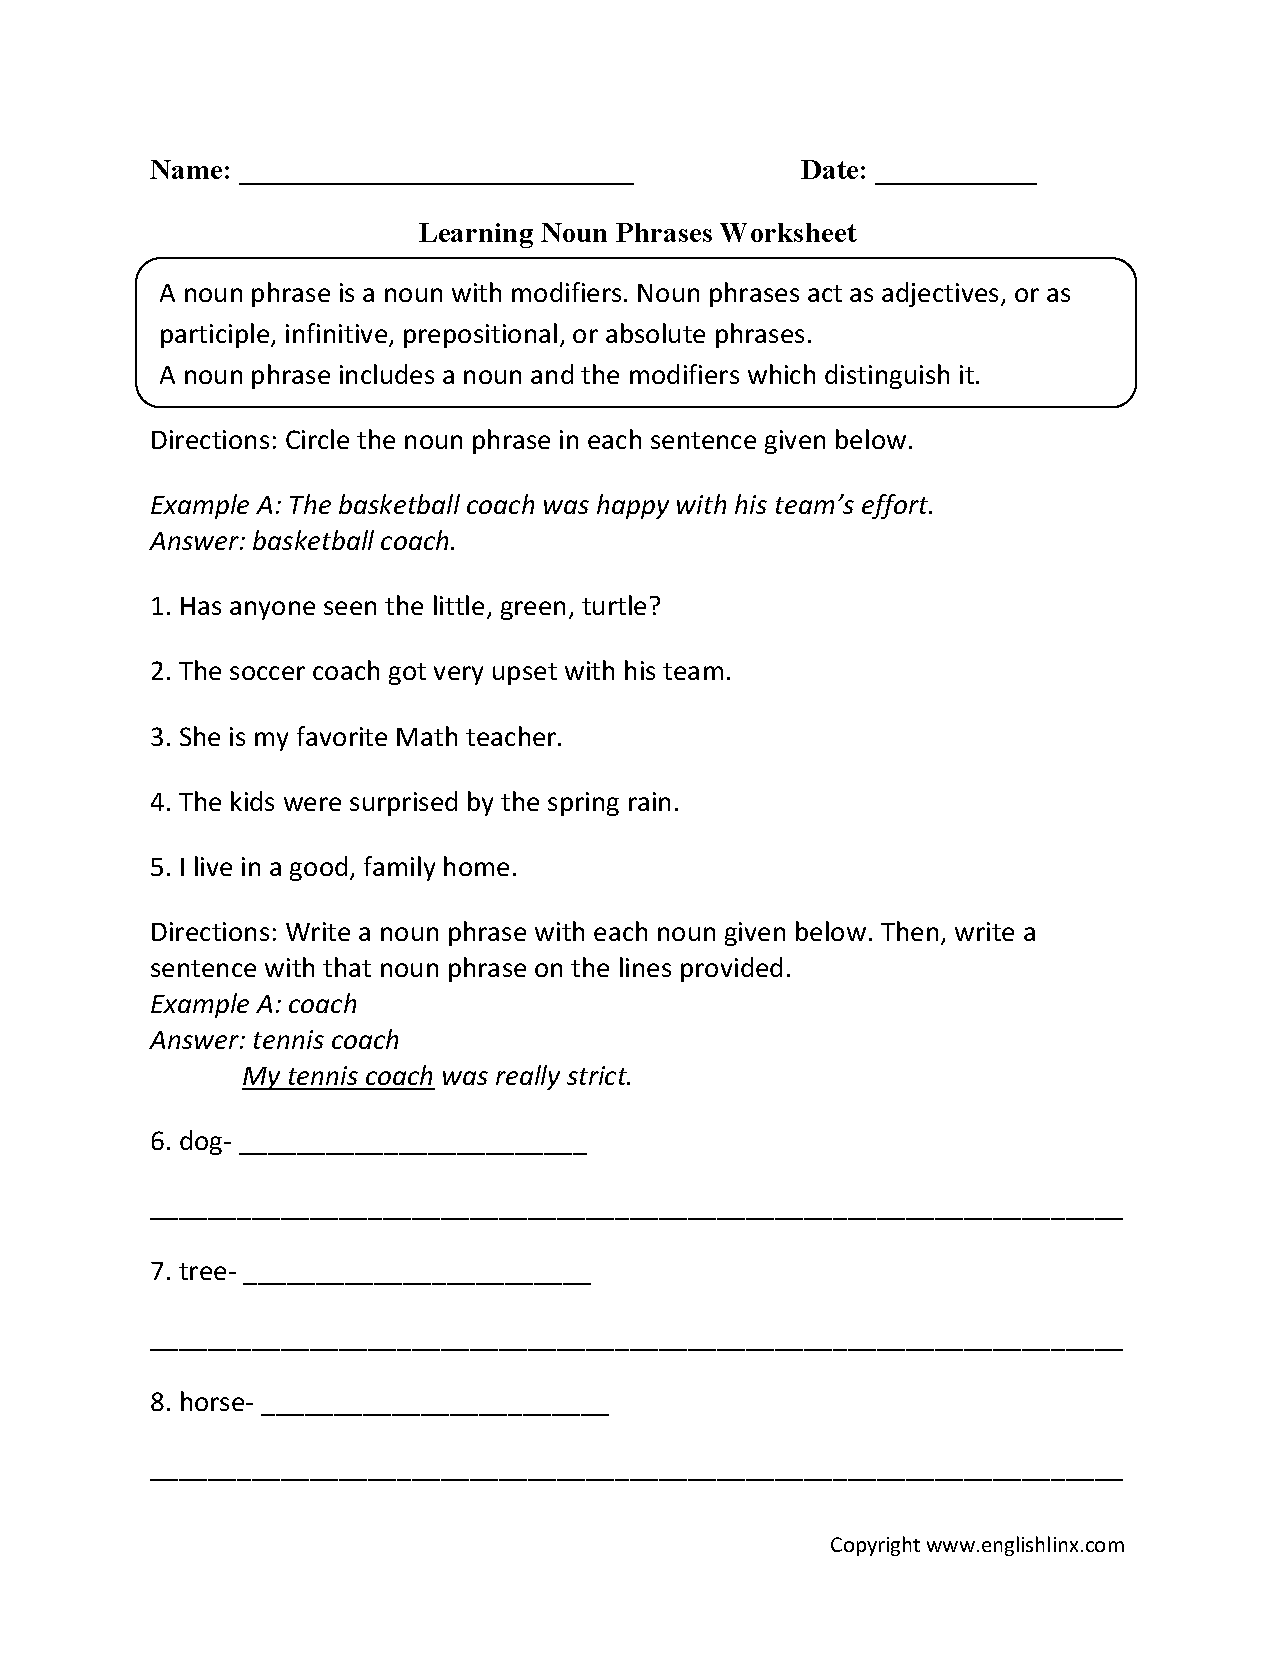 Nouns Worksheets   Noun Phrases Worksheets   Adverbial phrases [ 1662 x 1275 Pixel ]